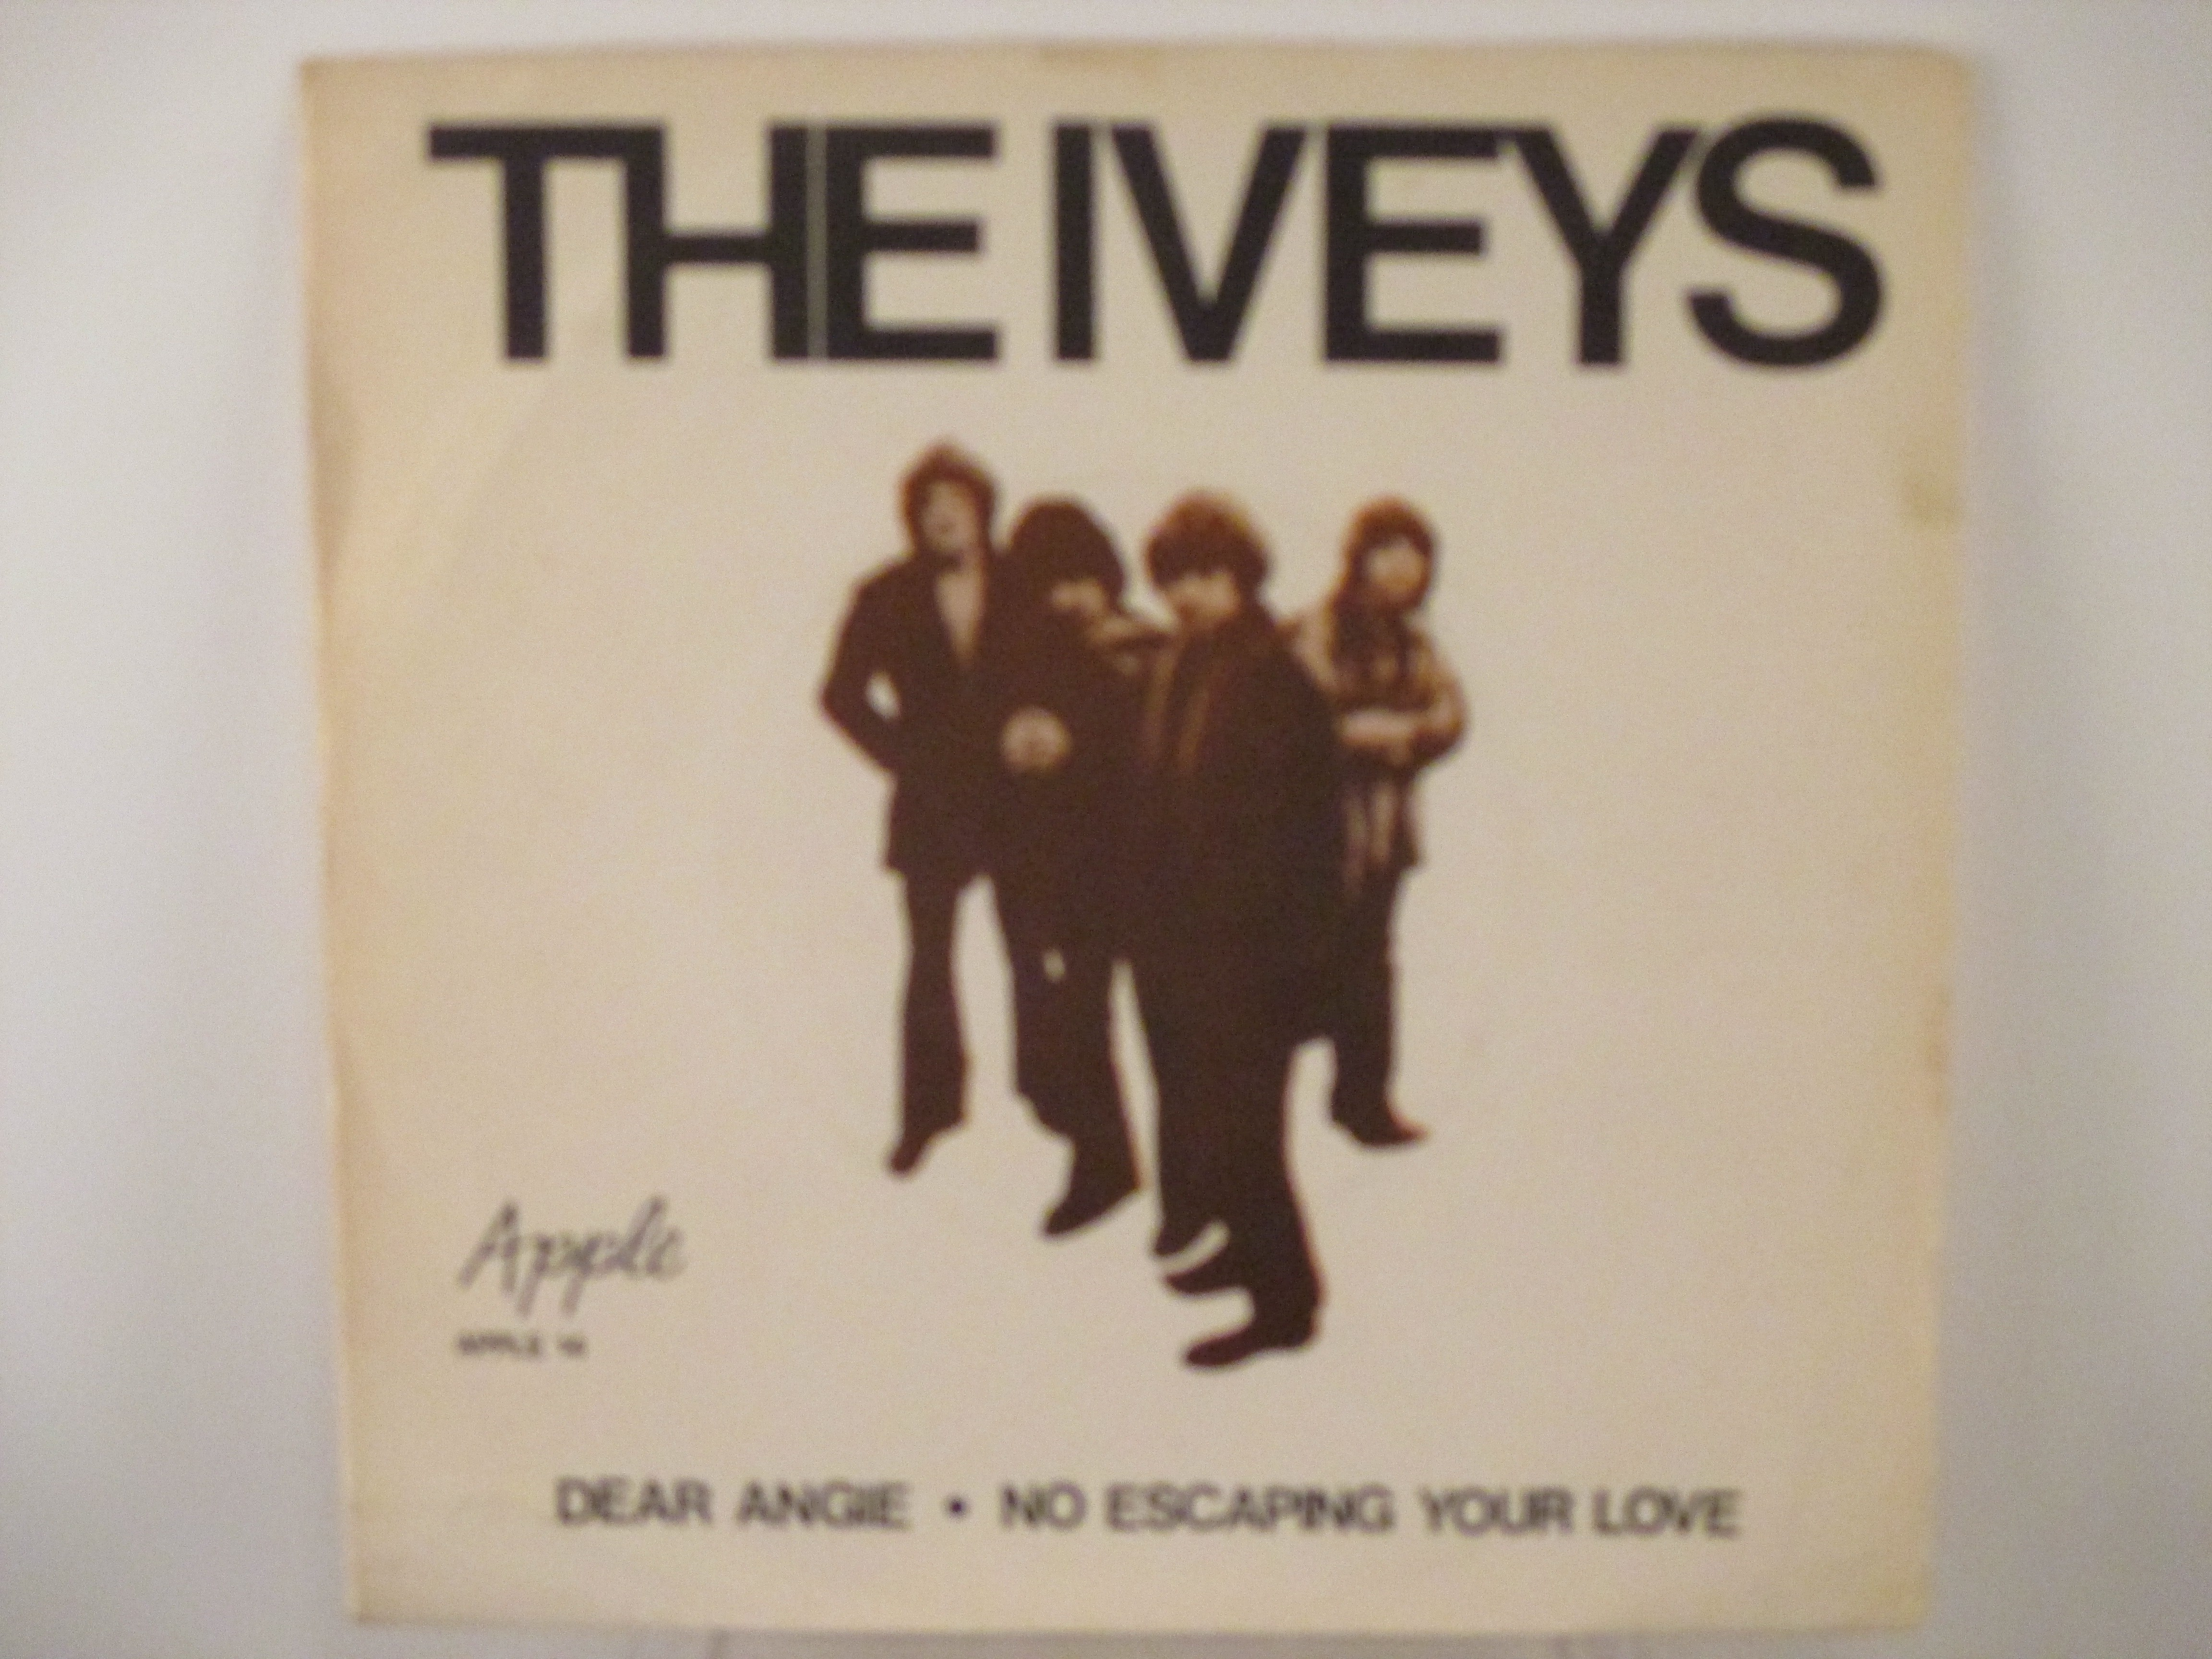 IVEYS : Dear Angie / No escaping your love